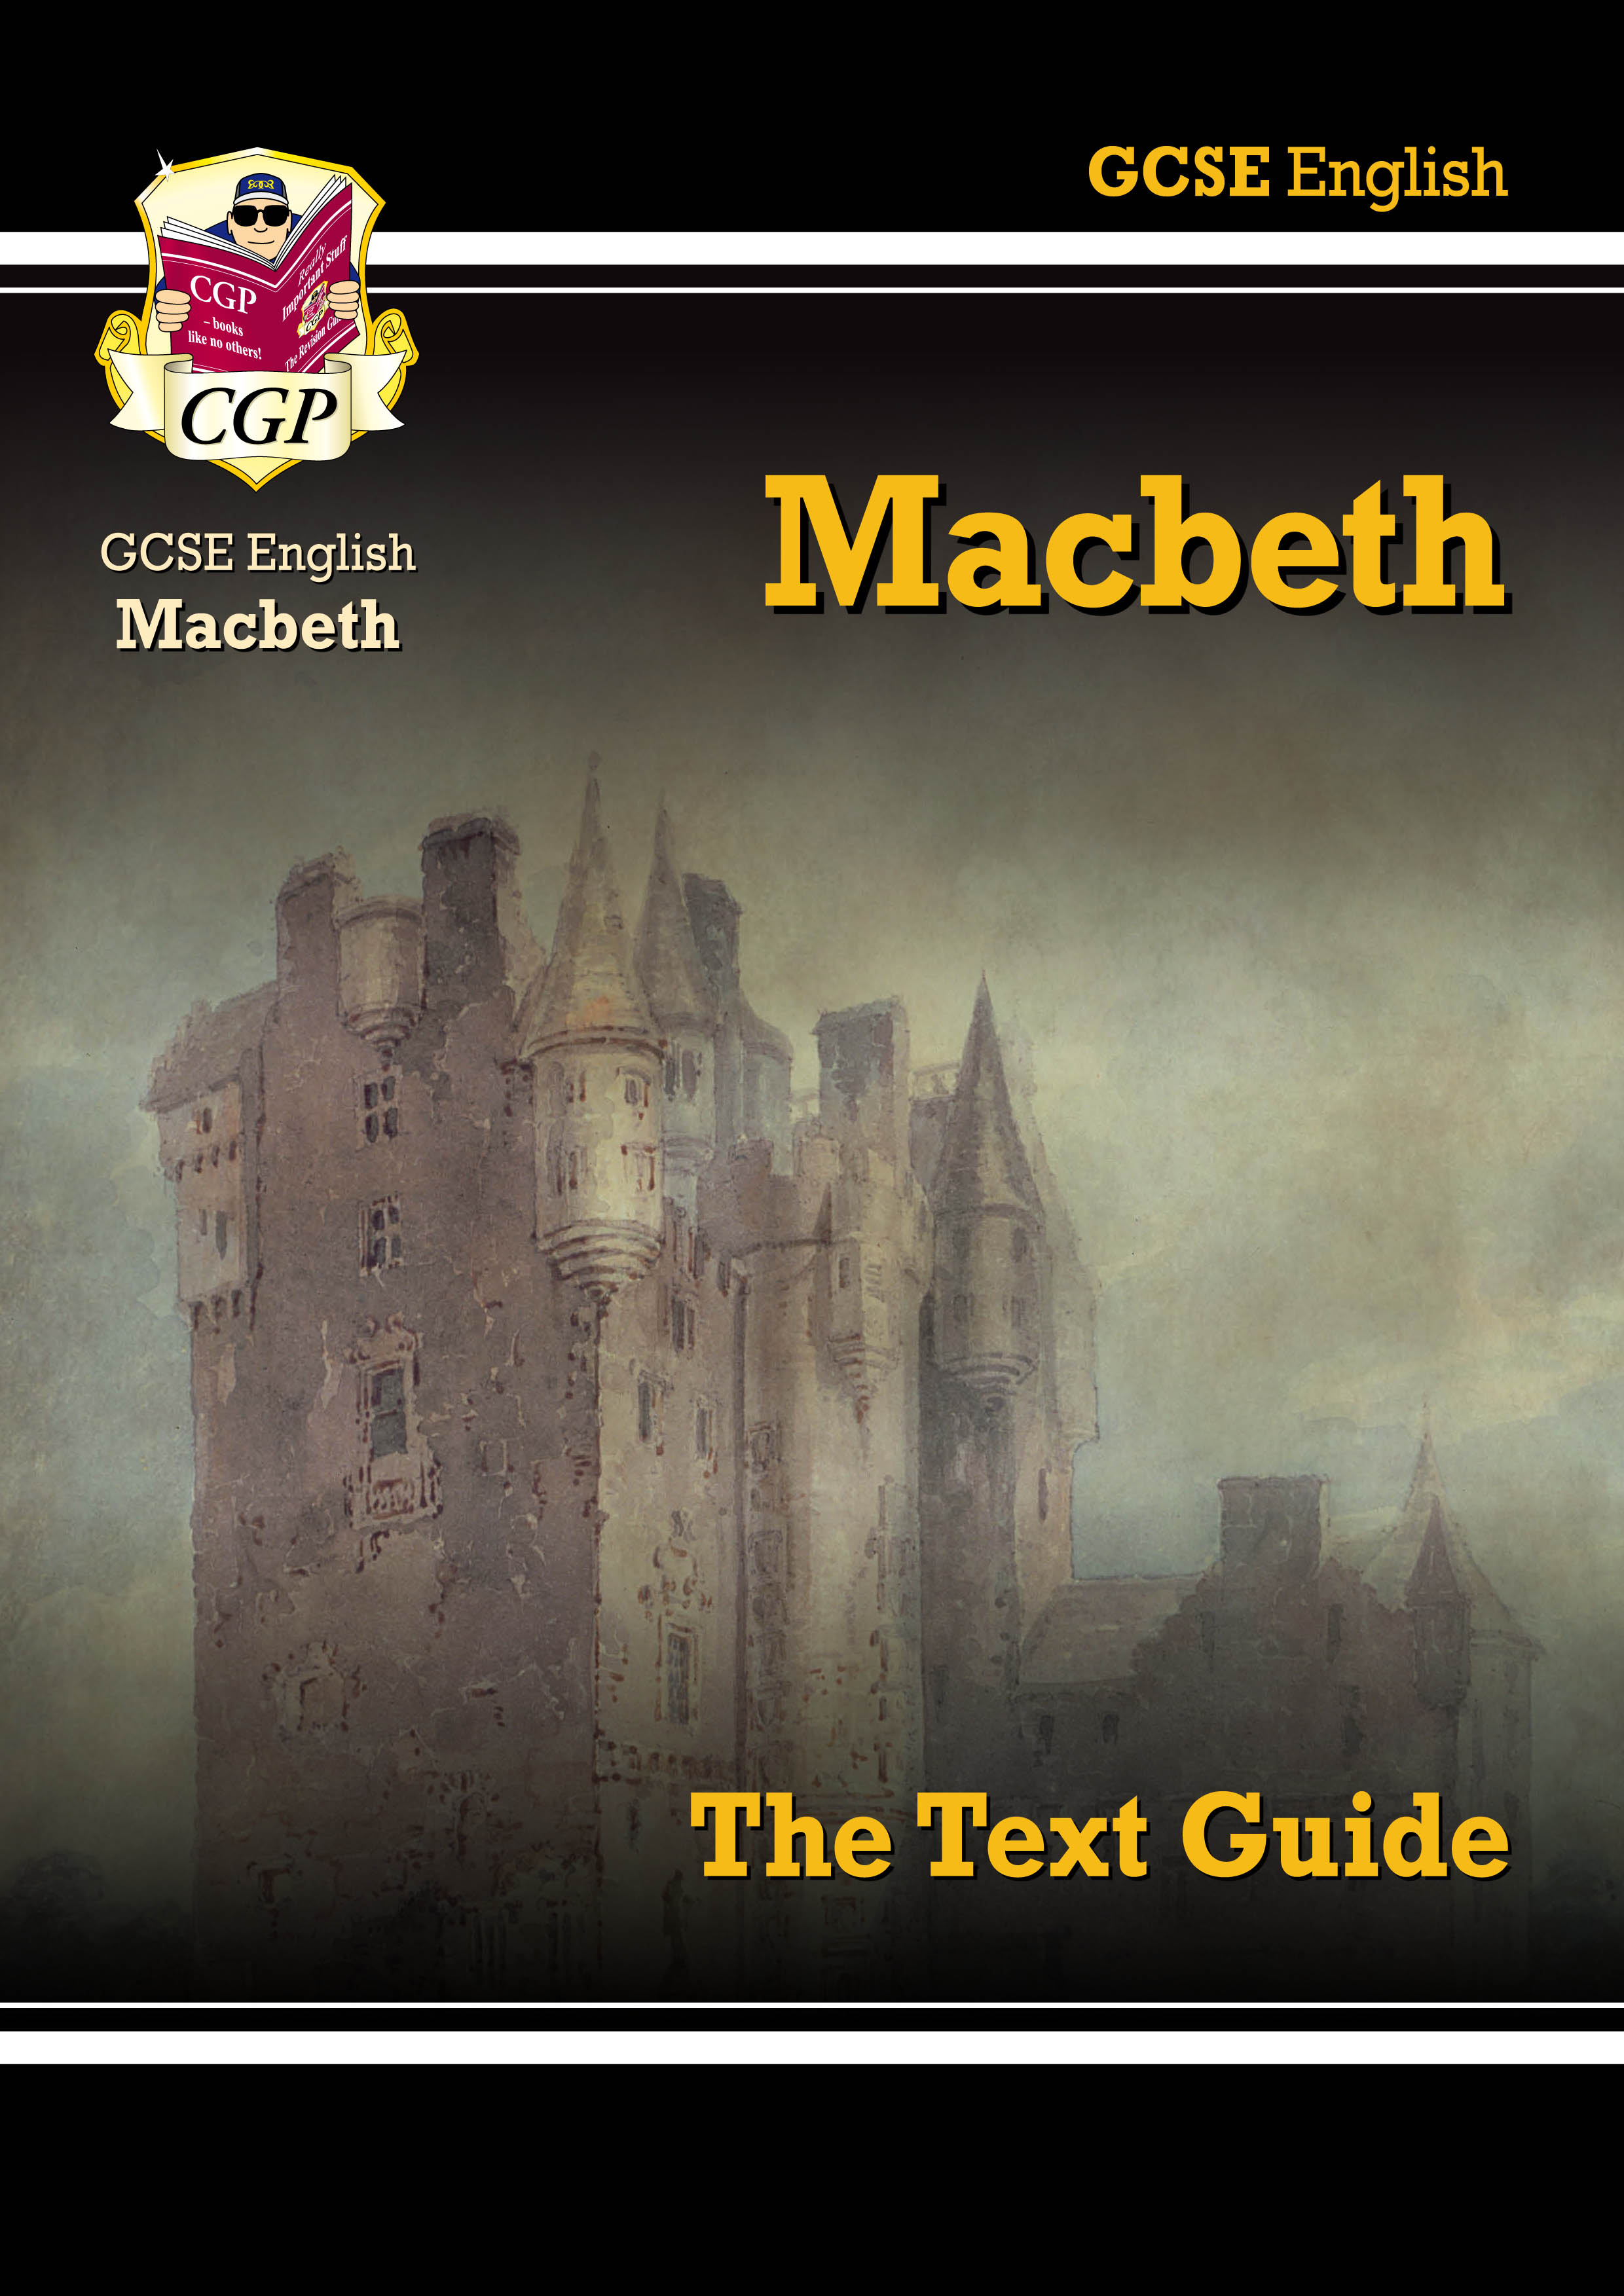 ETM43DK - Grade 9-1 GCSE English Shakespeare Text Guide - Macbeth